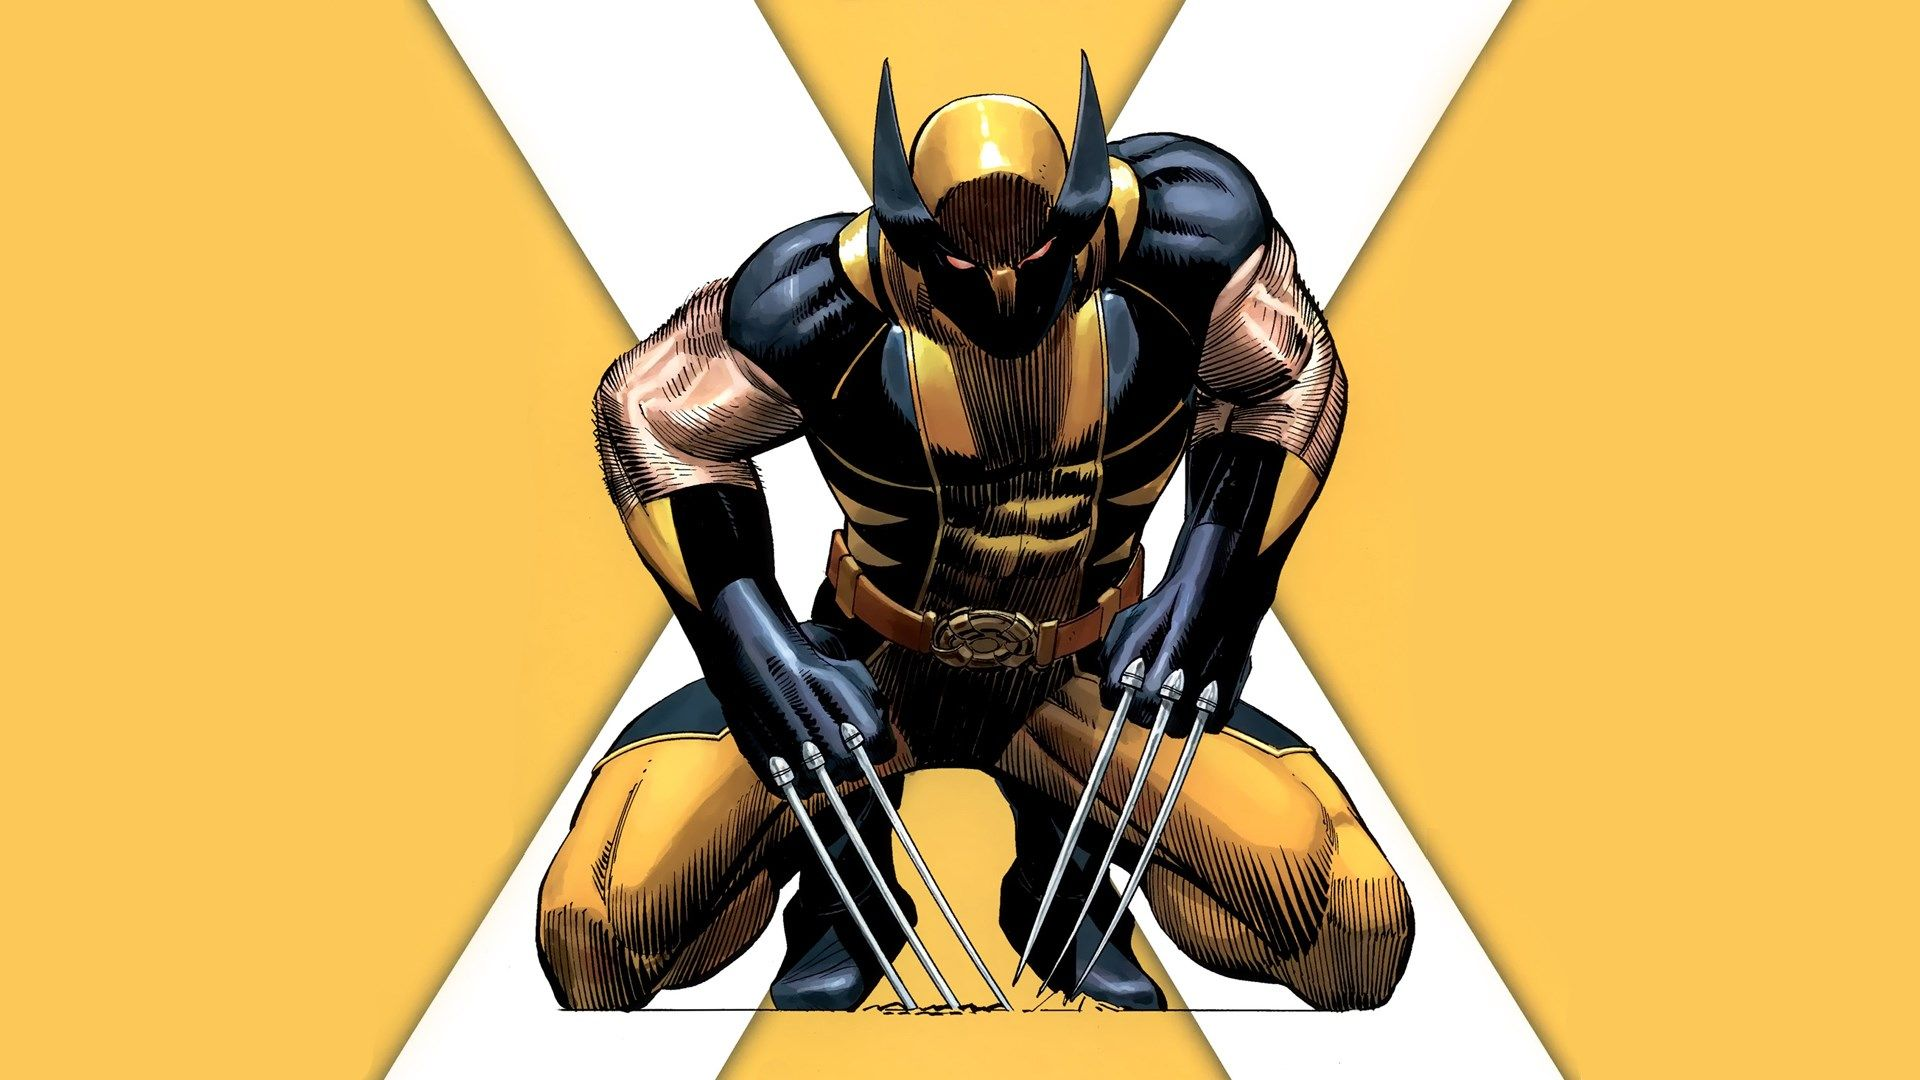 2017 03 25 High Resolution Wallpapers wolverine picture